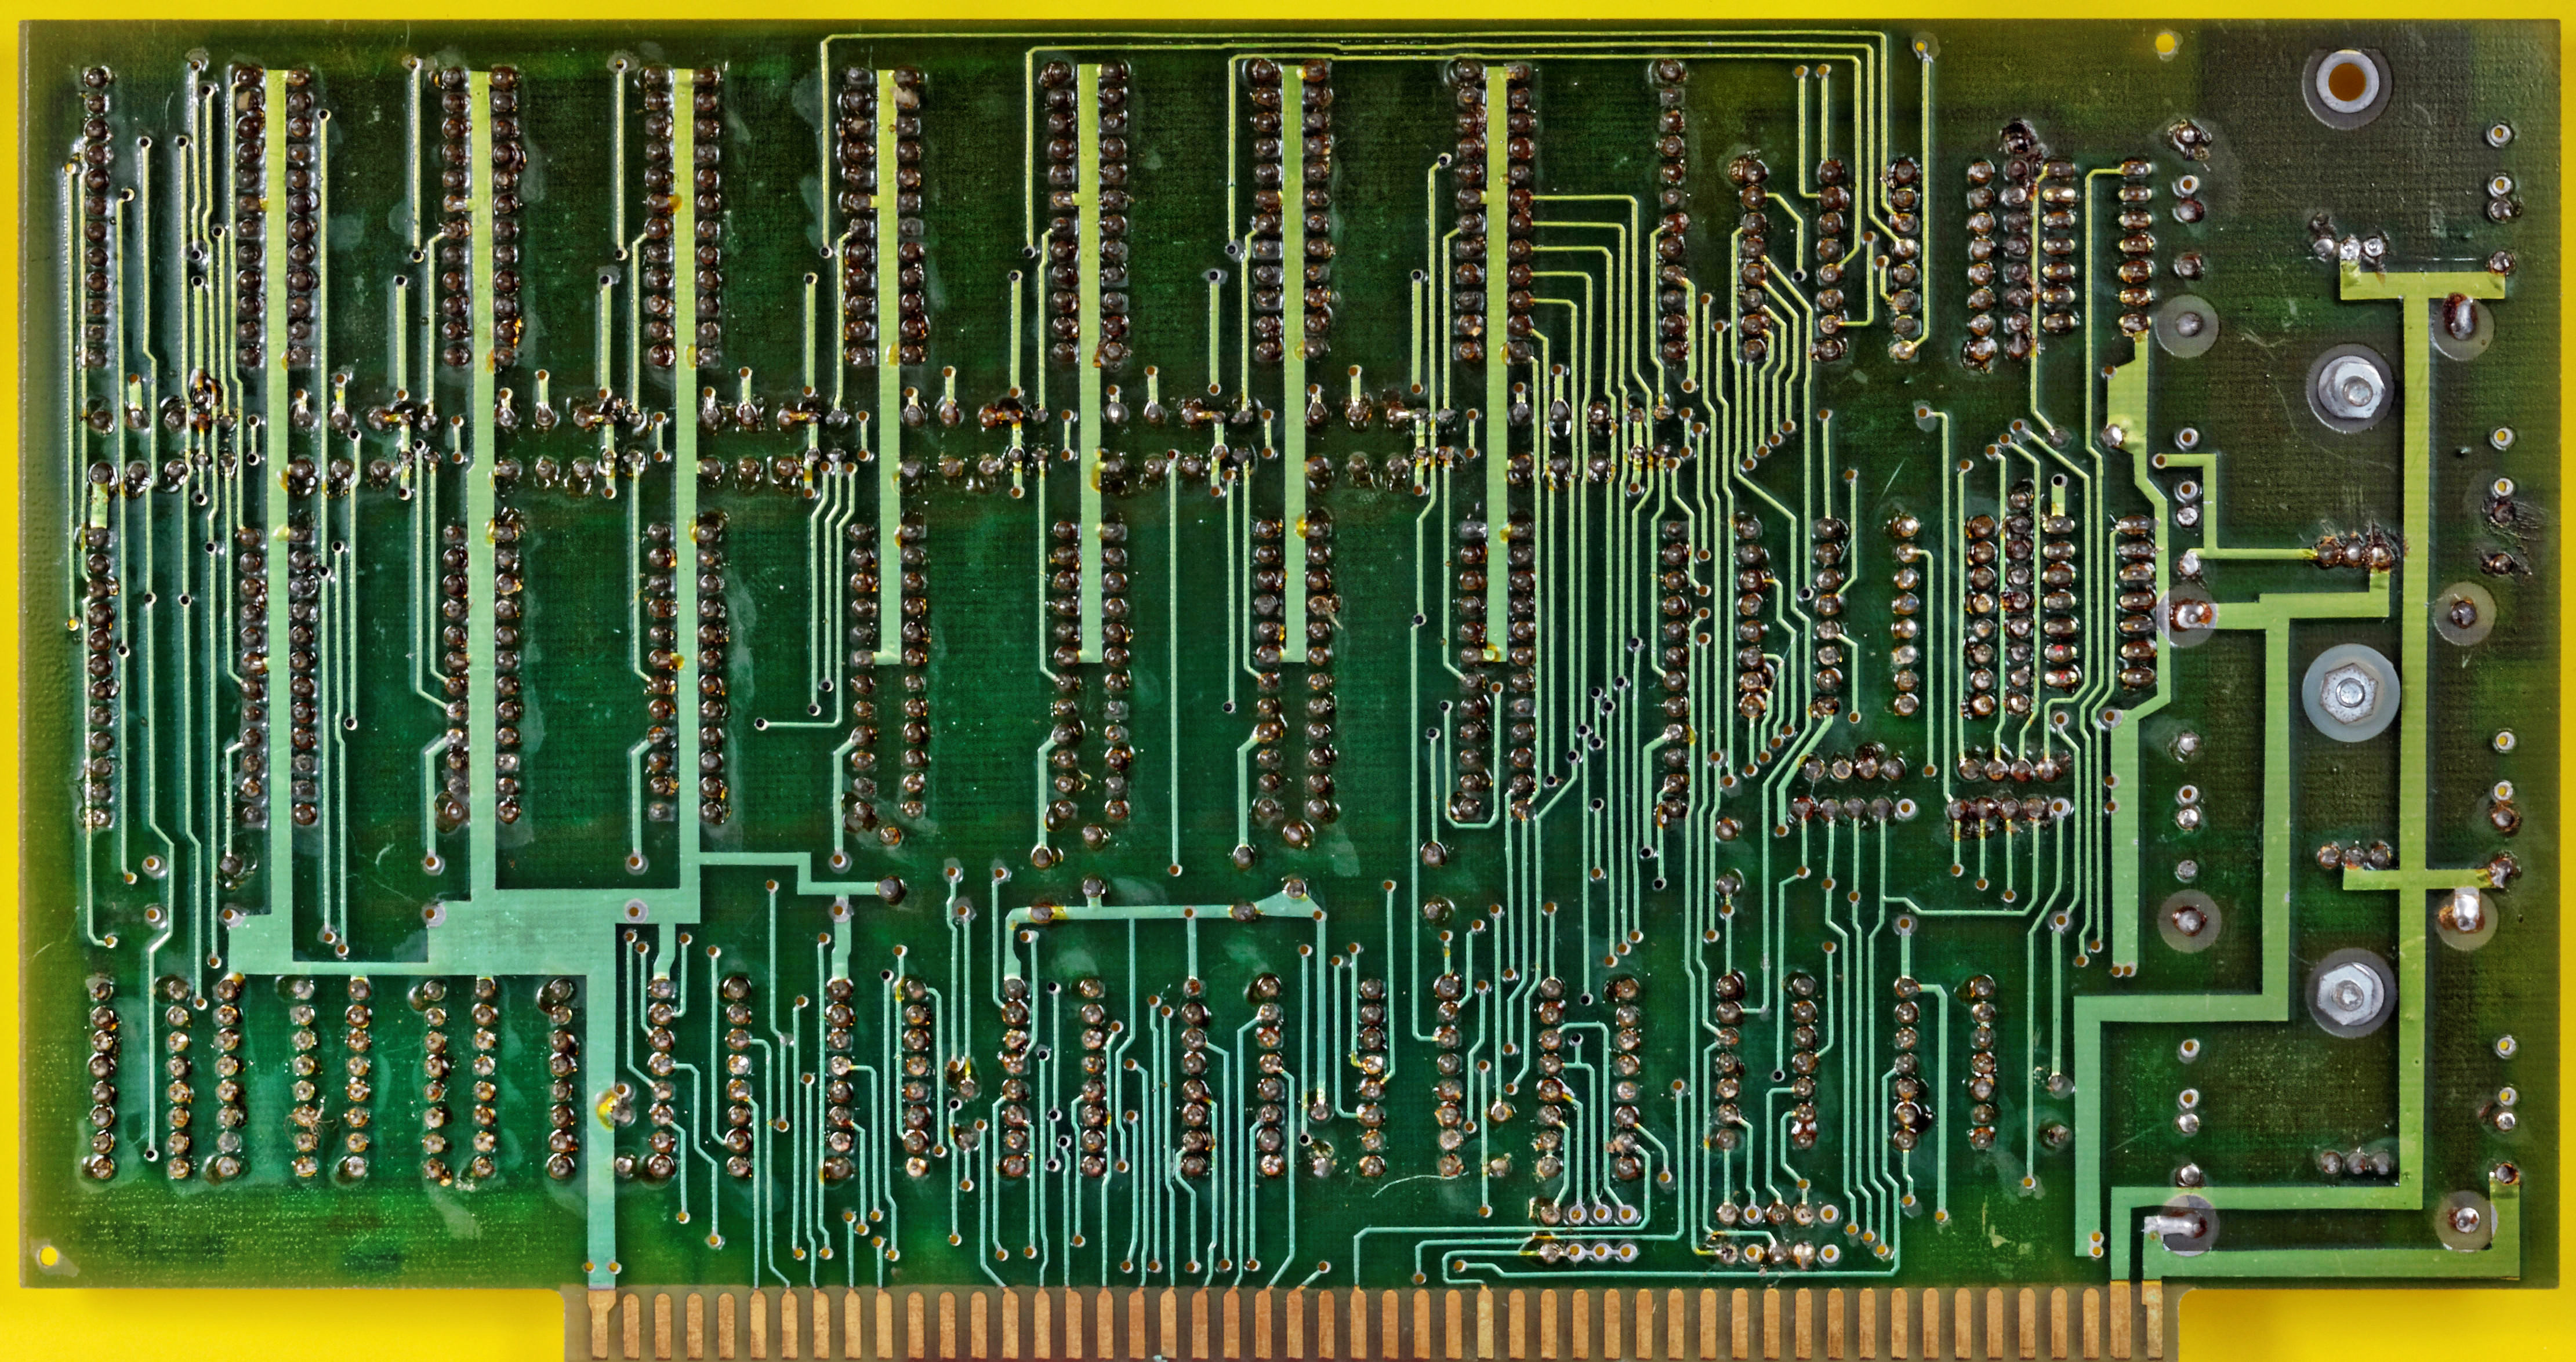 This should be IA-1050-ROM-rear.jpeg.  Is it missing?